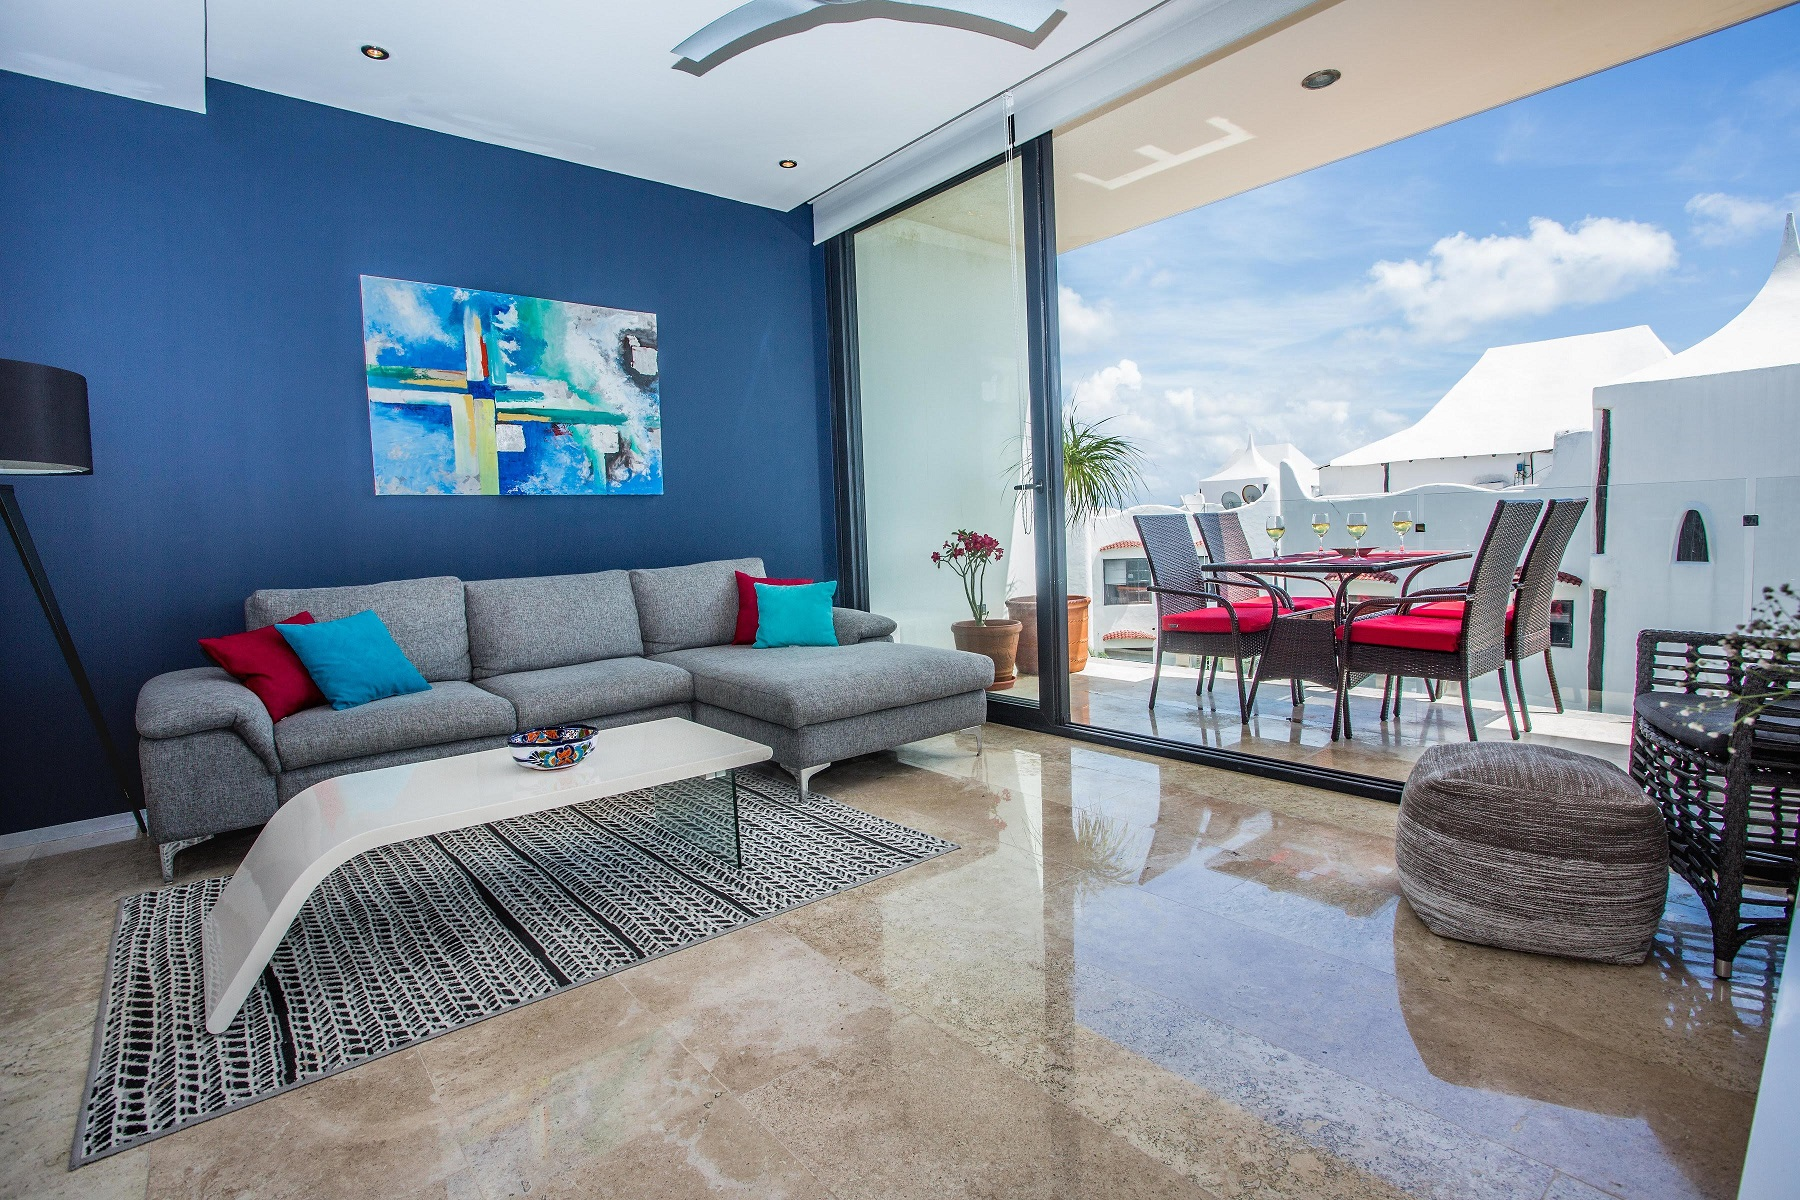 21242 Luxury 2 BR condo with ocean view in Coco  - Condo